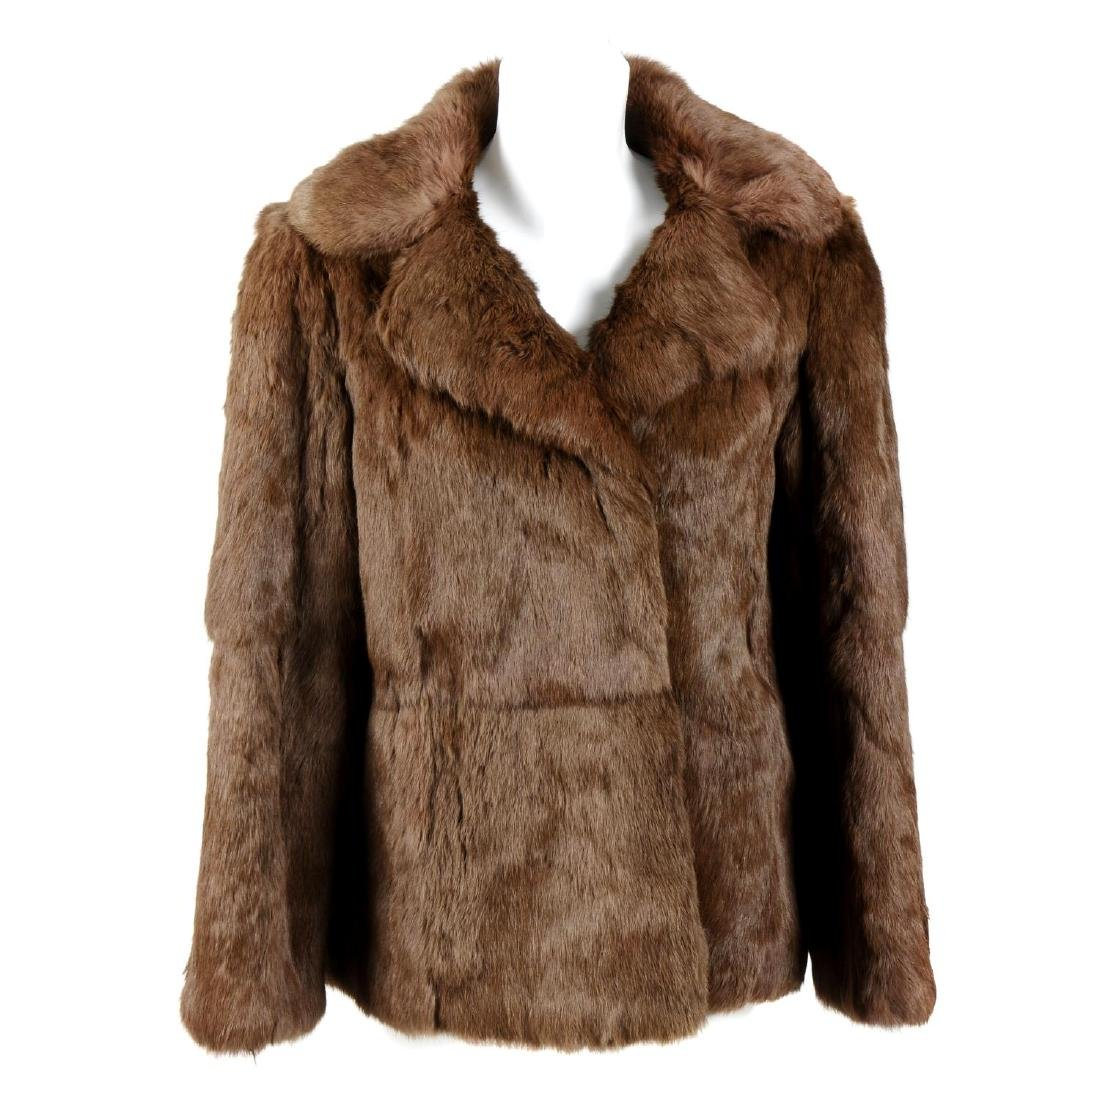 Four coney fur jackets and a coney fur coat. To include